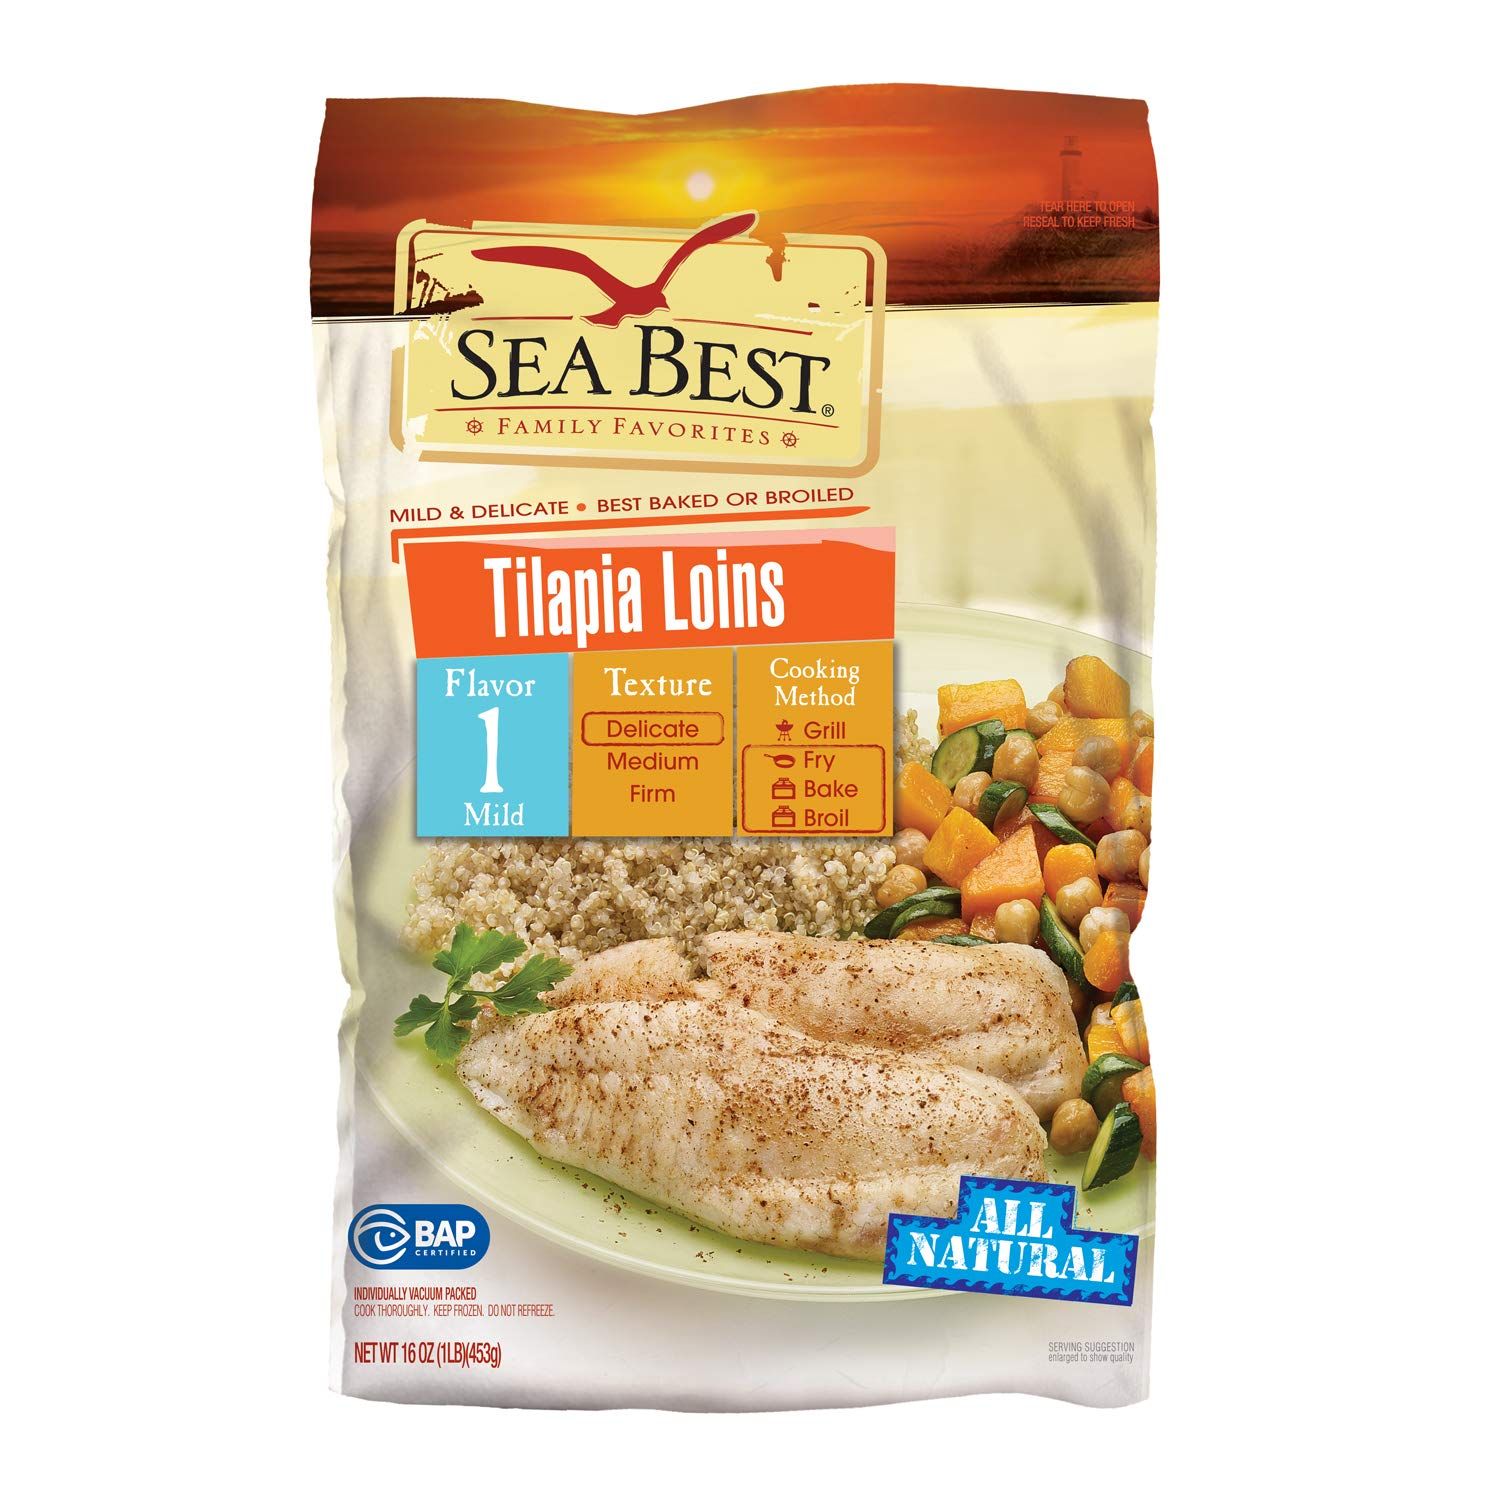 Sea Best All Natural Tilapia Fillets 16 Ounce Amazon Com Grocery Gourmet Food